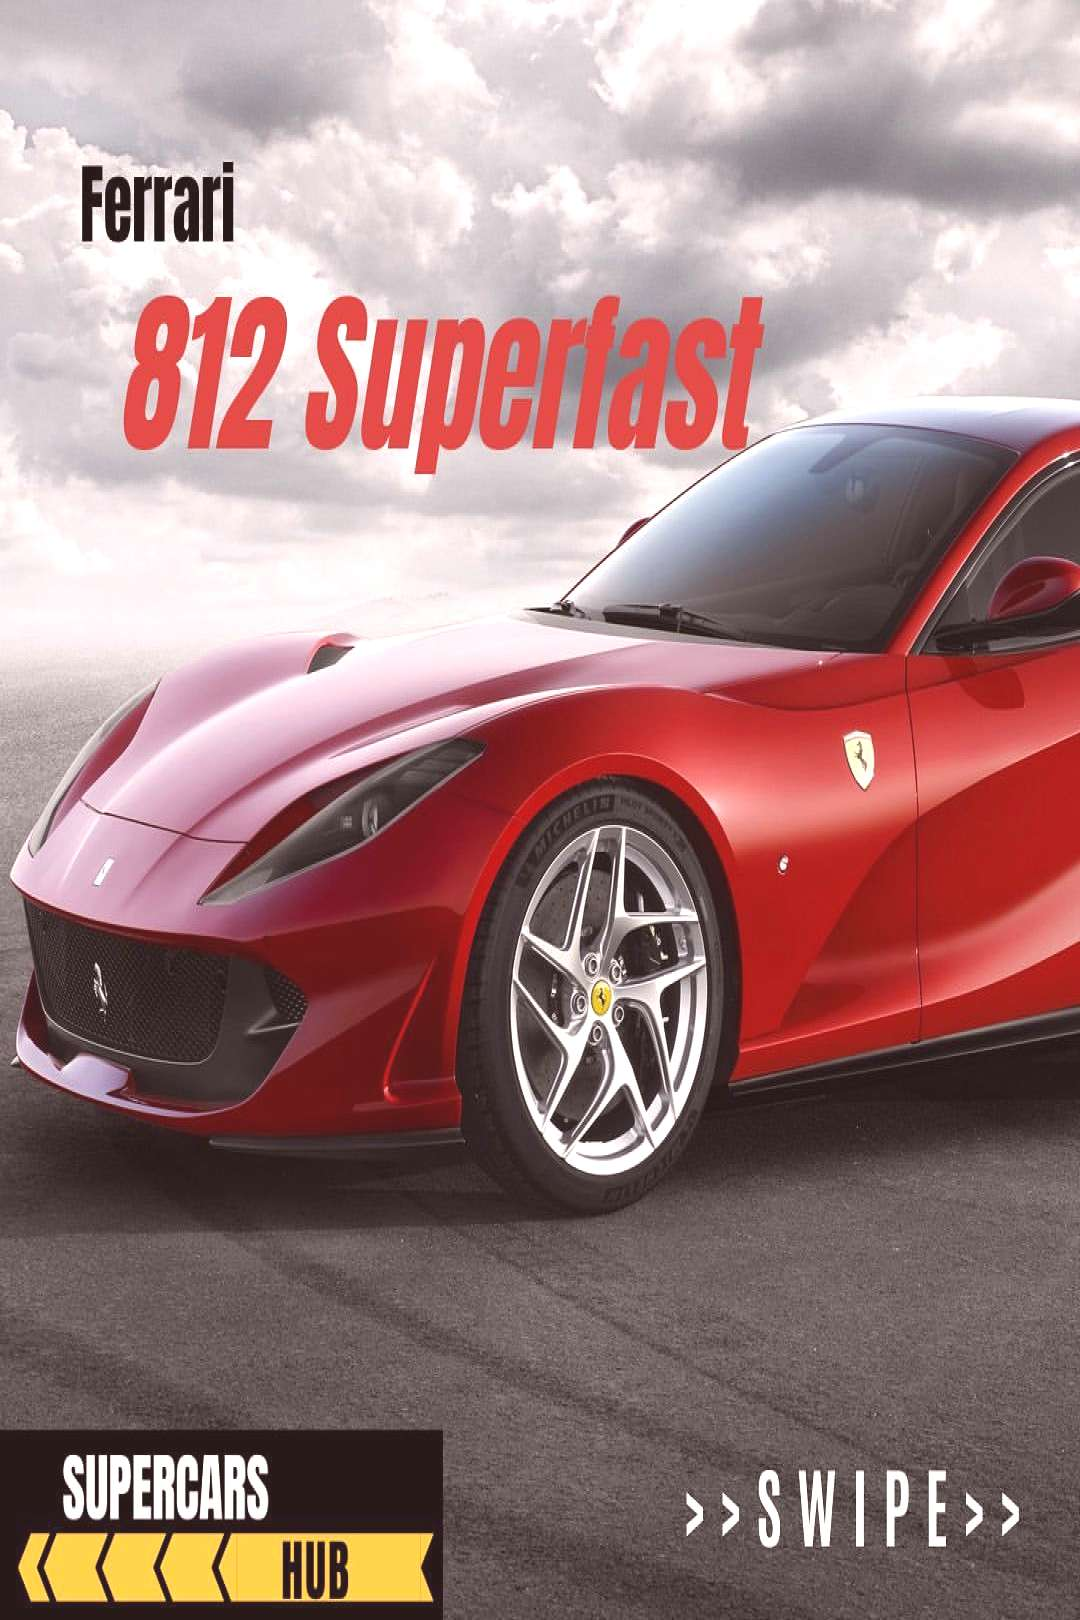 Supercars Hub on April 22 2020 car possible text that says Ferrar